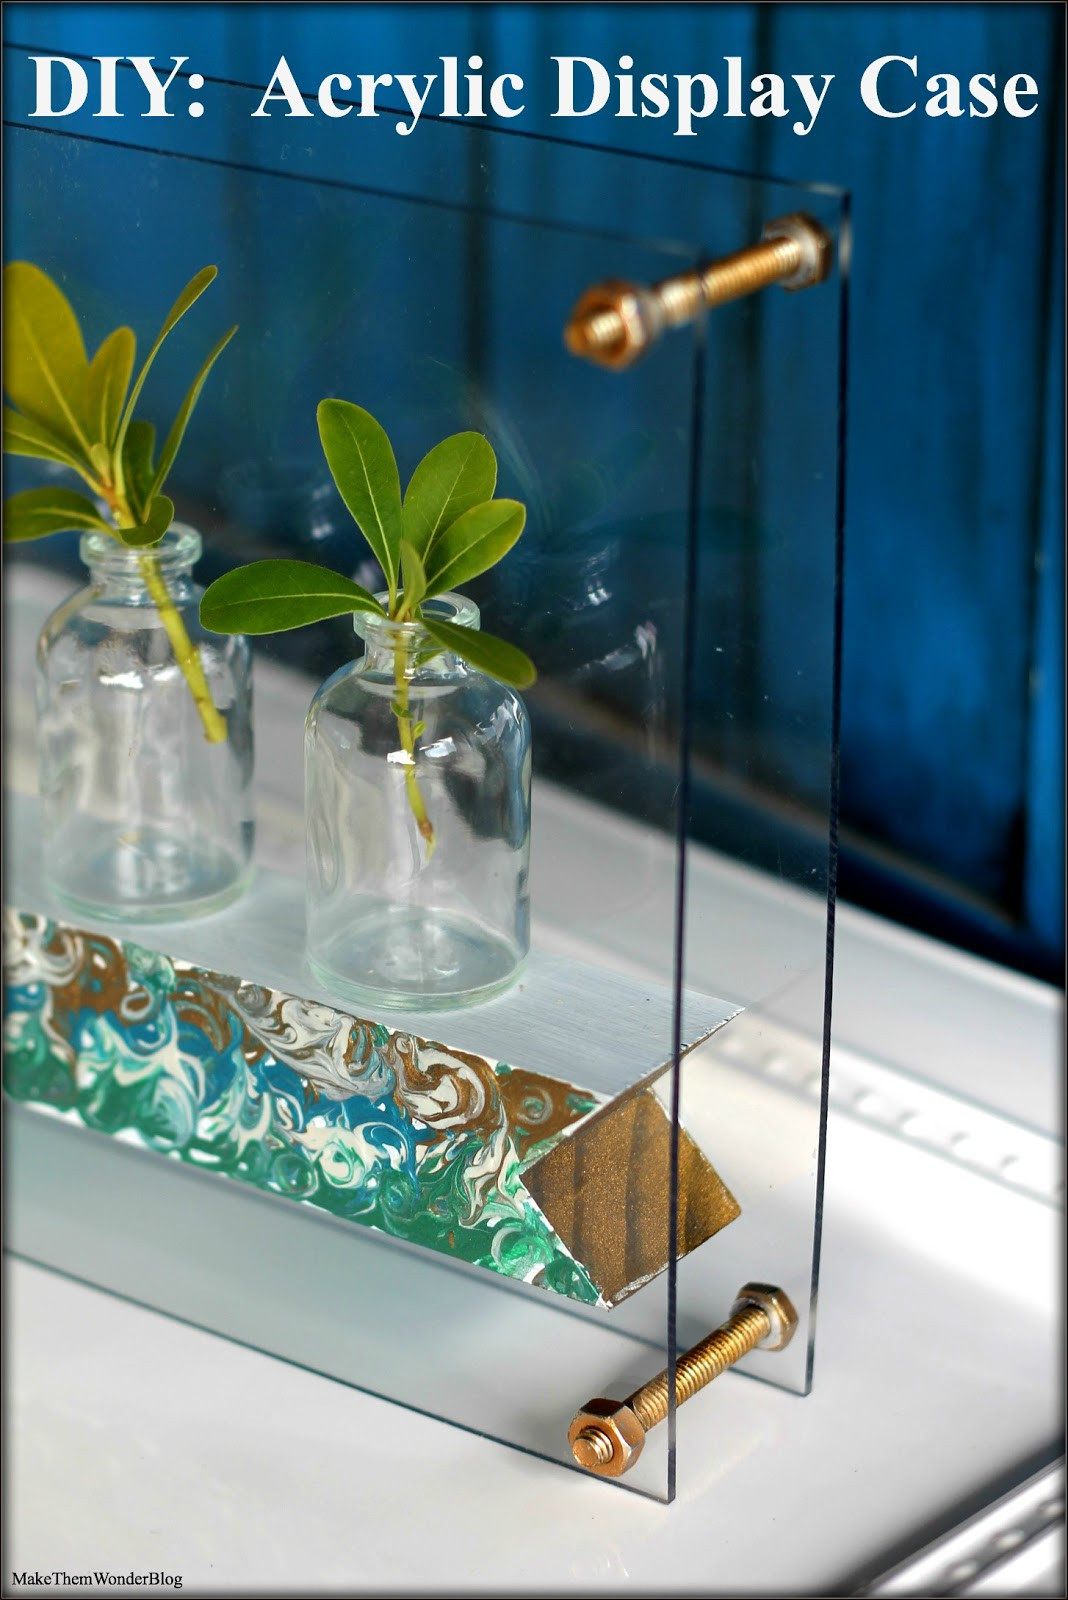 Best ideas about DIY Acrylic Box . Save or Pin Make Them Wonder DIY Acrylic Display Case Now.